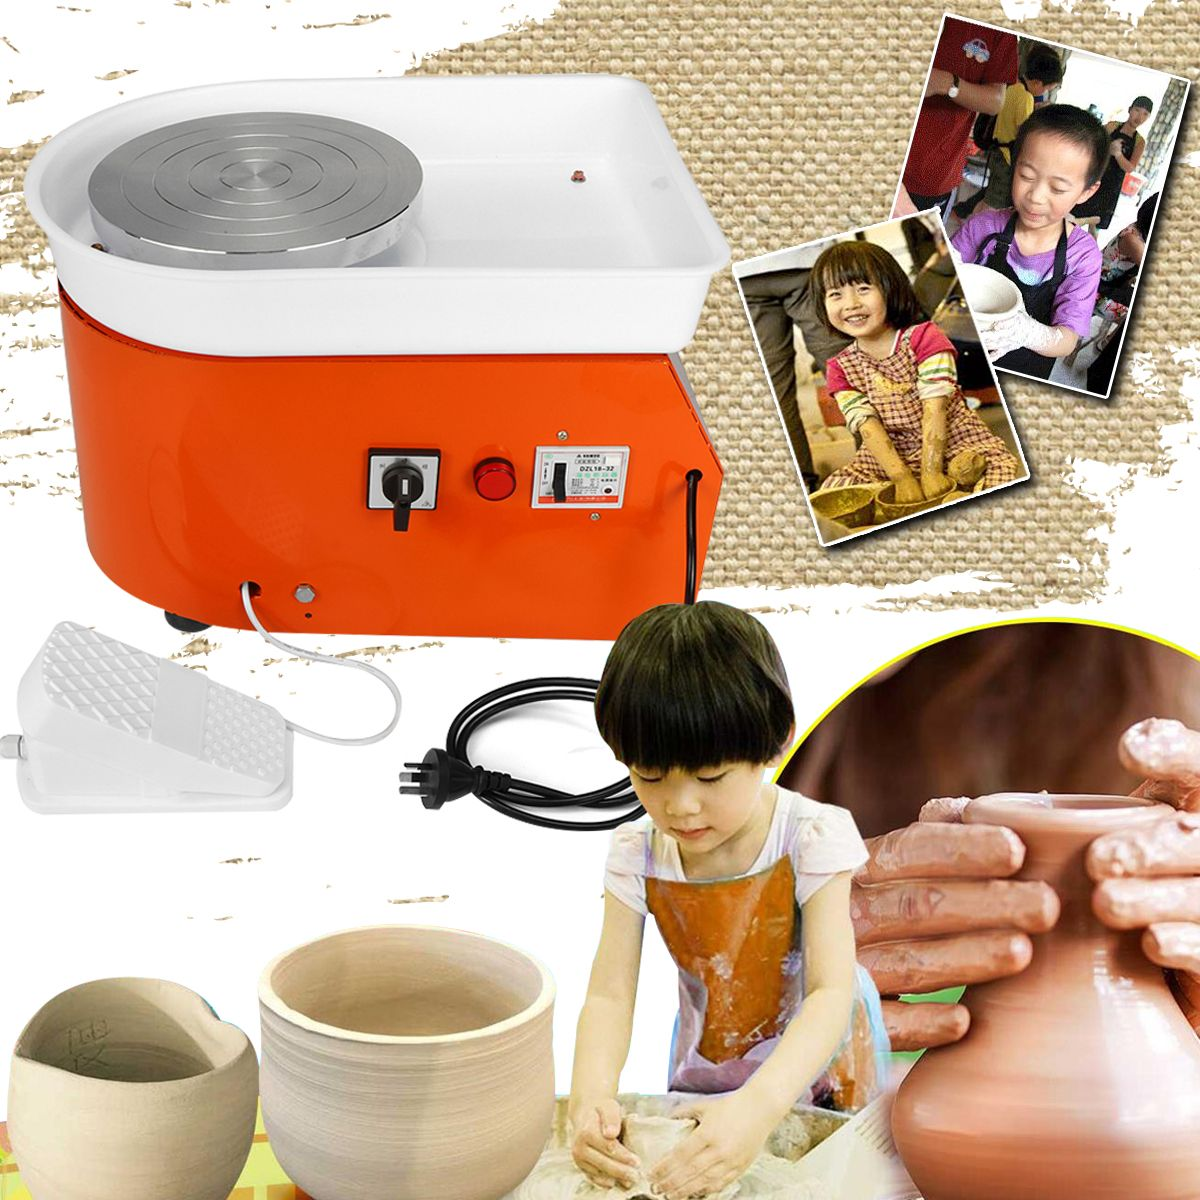 25cm Pottery Wheel Machine Ceramic Work Ceramics Clay Art EU/AU AC220V 250-350W With Mobile Flexible Foot Pedal Smooth Low Noise